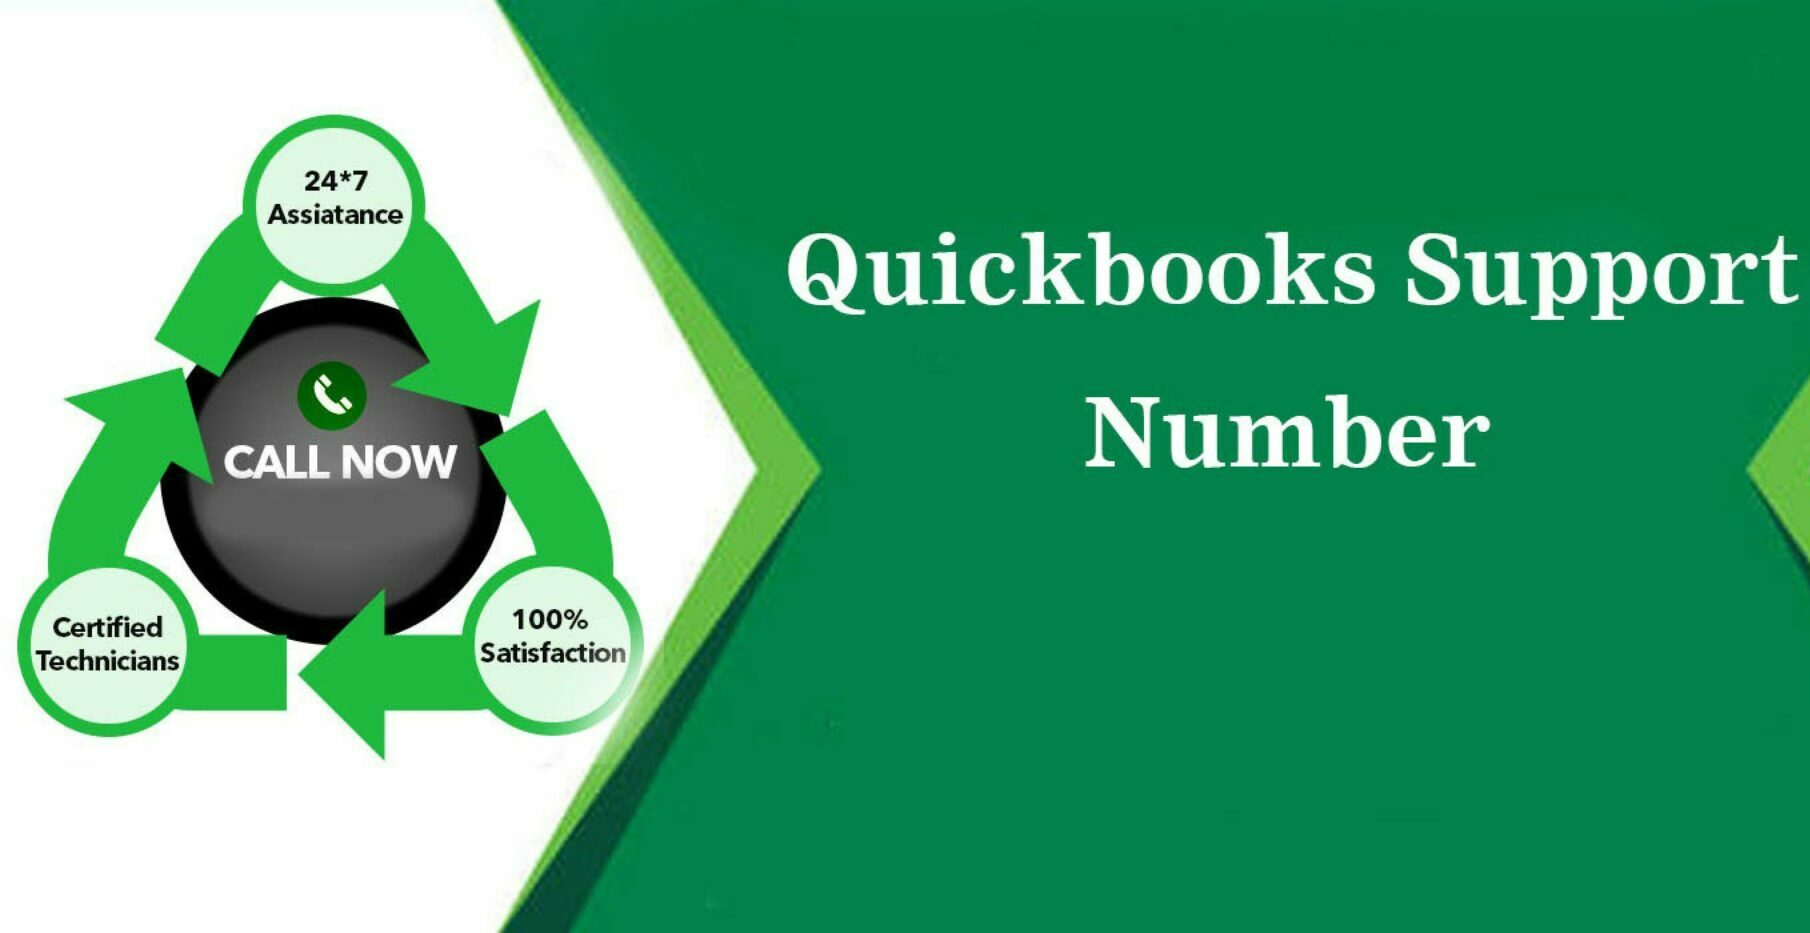 Quickbooks POS Support Number: Get Quick Assistance Now